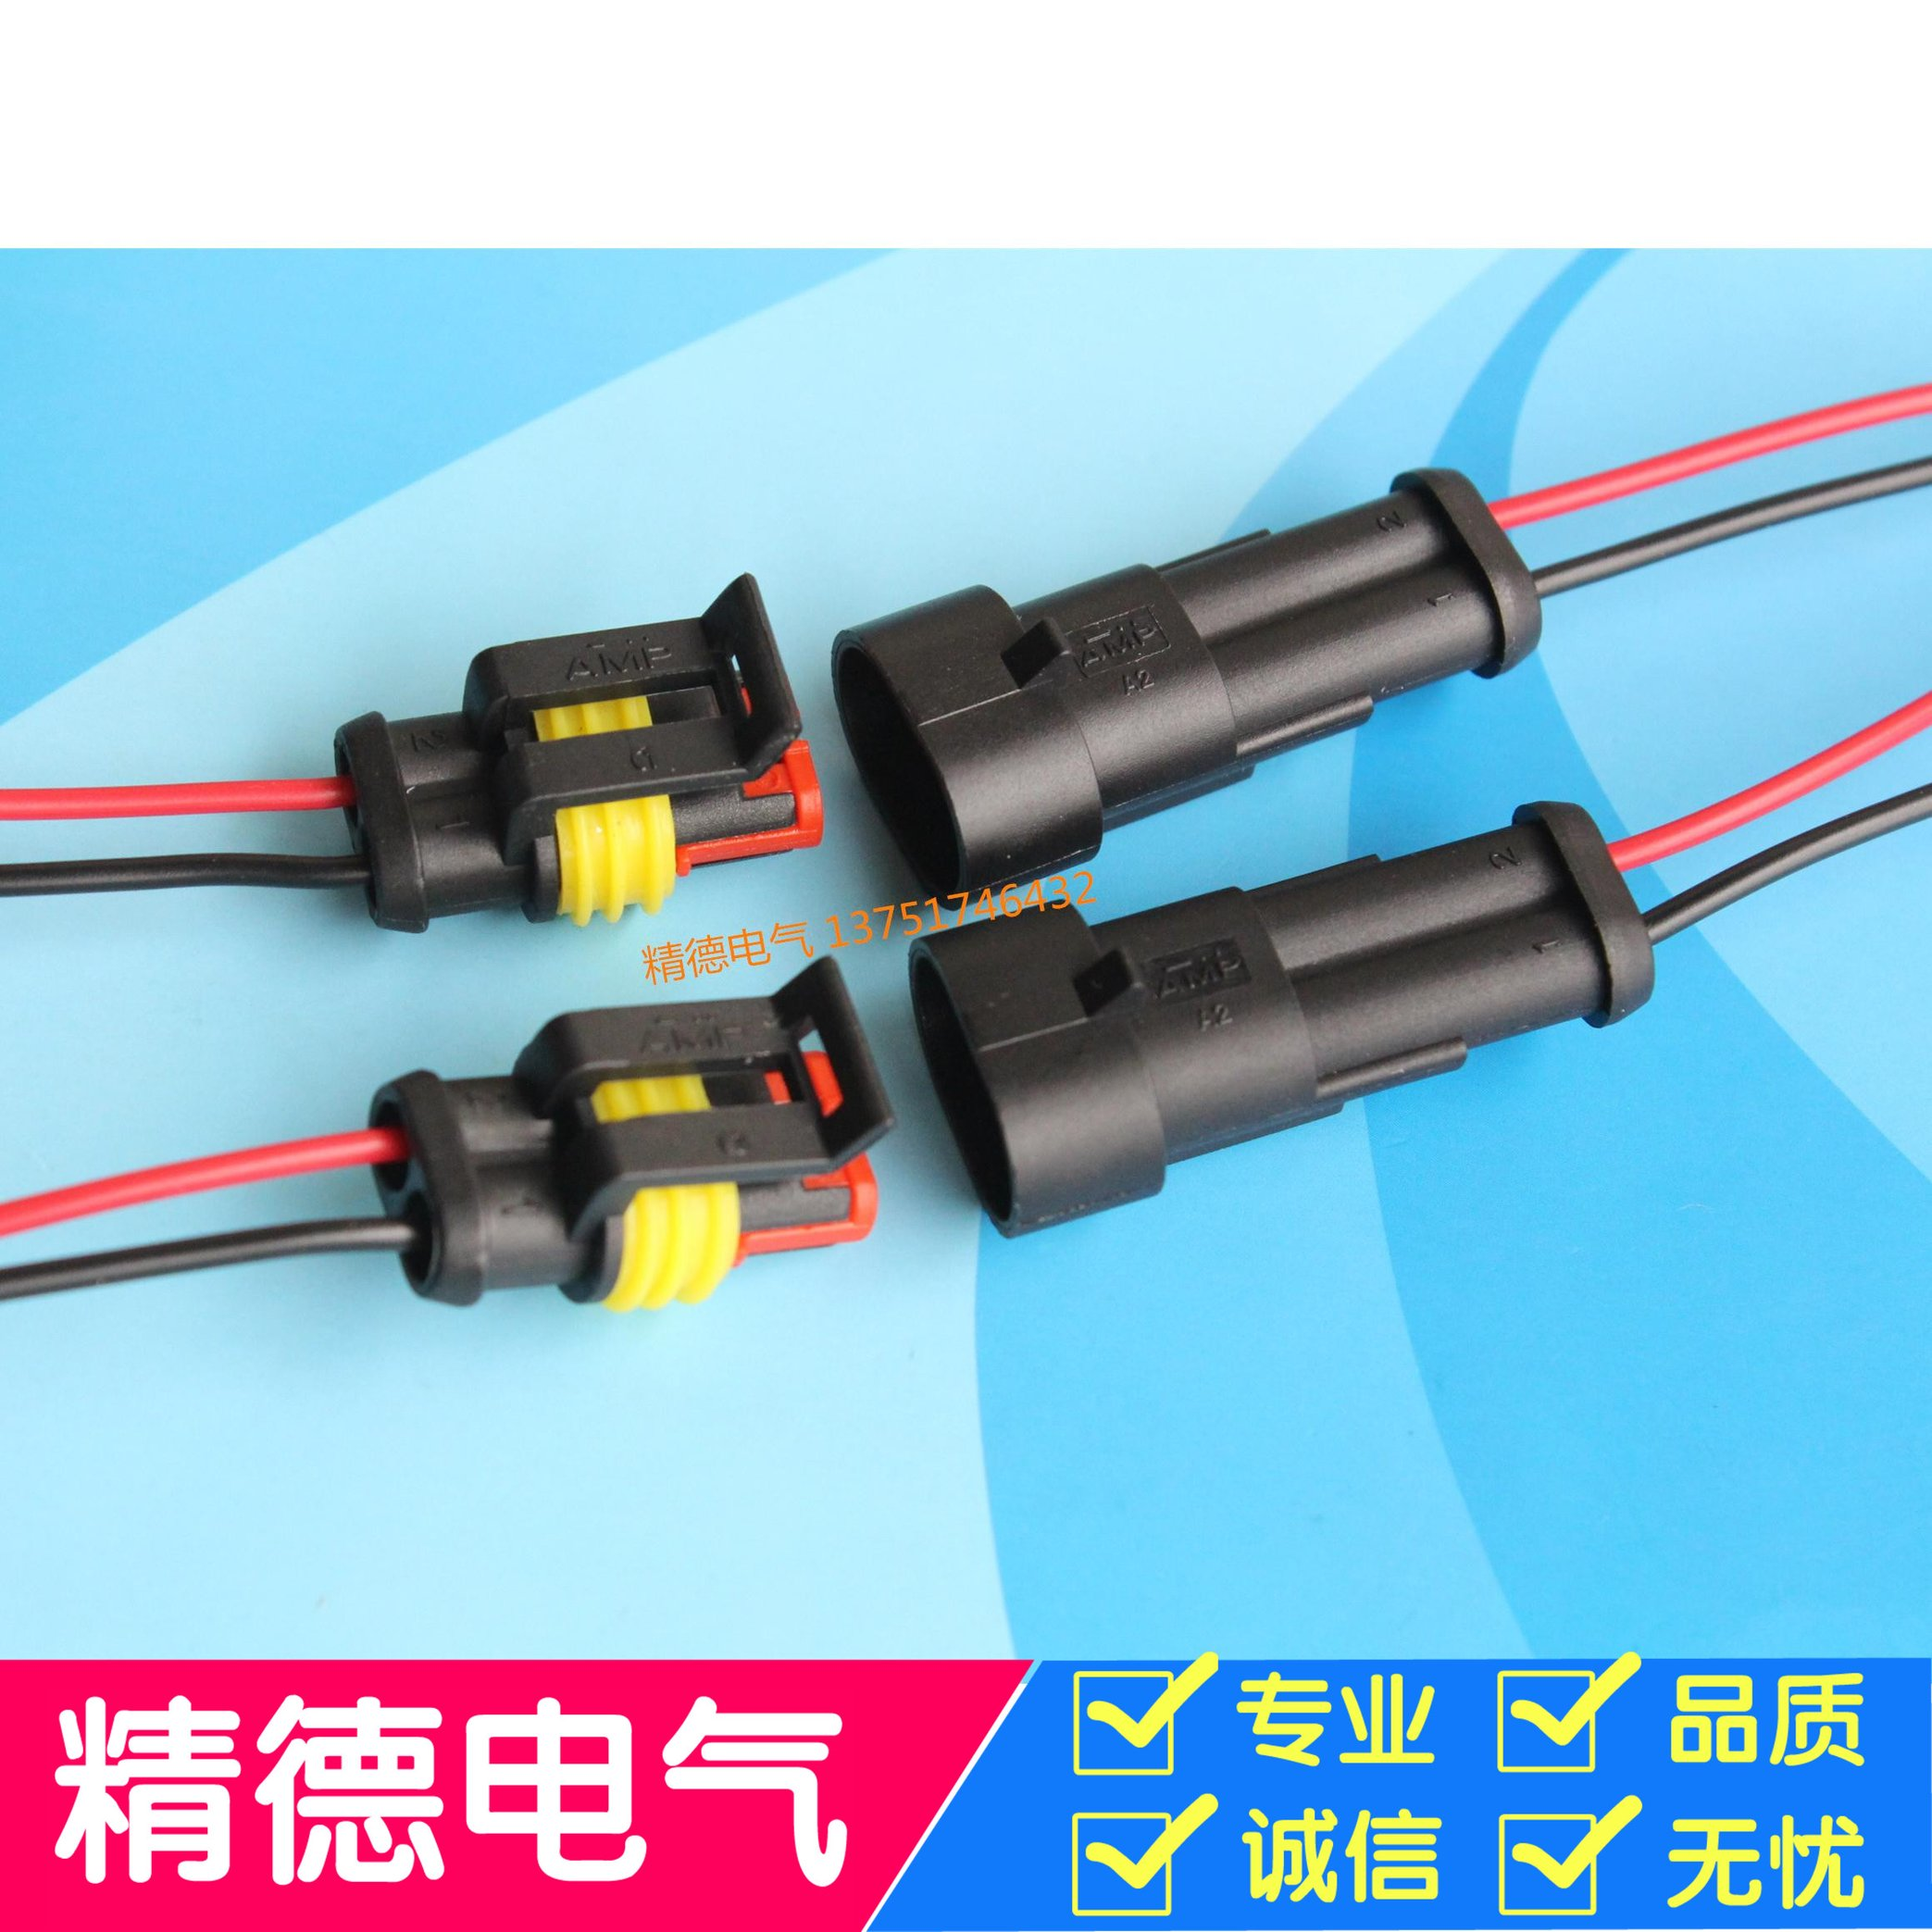 Categoryelectronic Componentproductnameautomotive Waterproof Wiring Harness Connector Plugs Automotive Amp Plug Socket Male Female Terminal Block Wire